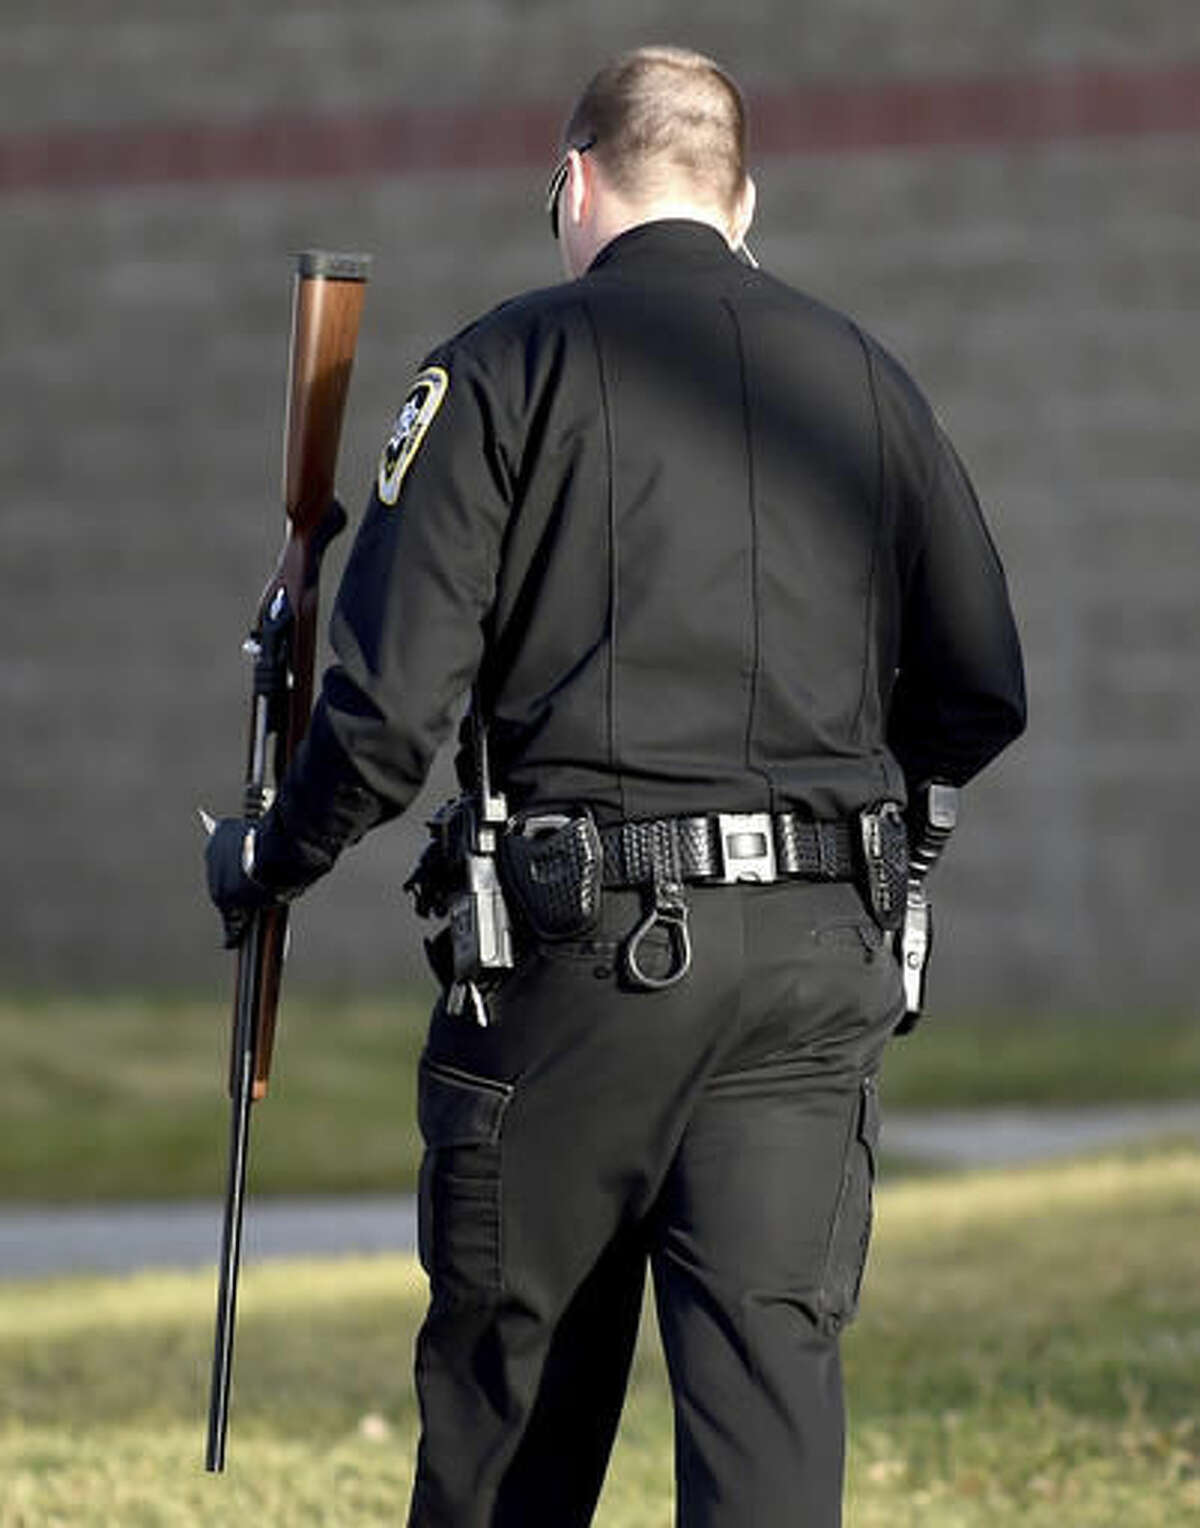 A Yellowstone County Sheriff's Deputy holds a rifle walking from the Montana Pavilion to his patrol car on Friday afternoon, Nov. 25, 2016, in Billings, Mont. Authorities say a bolt-action rifle was fired during a gun show in Billings, injuring a man and a young girl. Capt. Bill Michaelis of the Yellowstone County Sheriff's Office told the Billings Gazette that a vendor was showing the gun to somebody when it discharged Friday. (Hannah Potes/The Billings Gazette via AP)